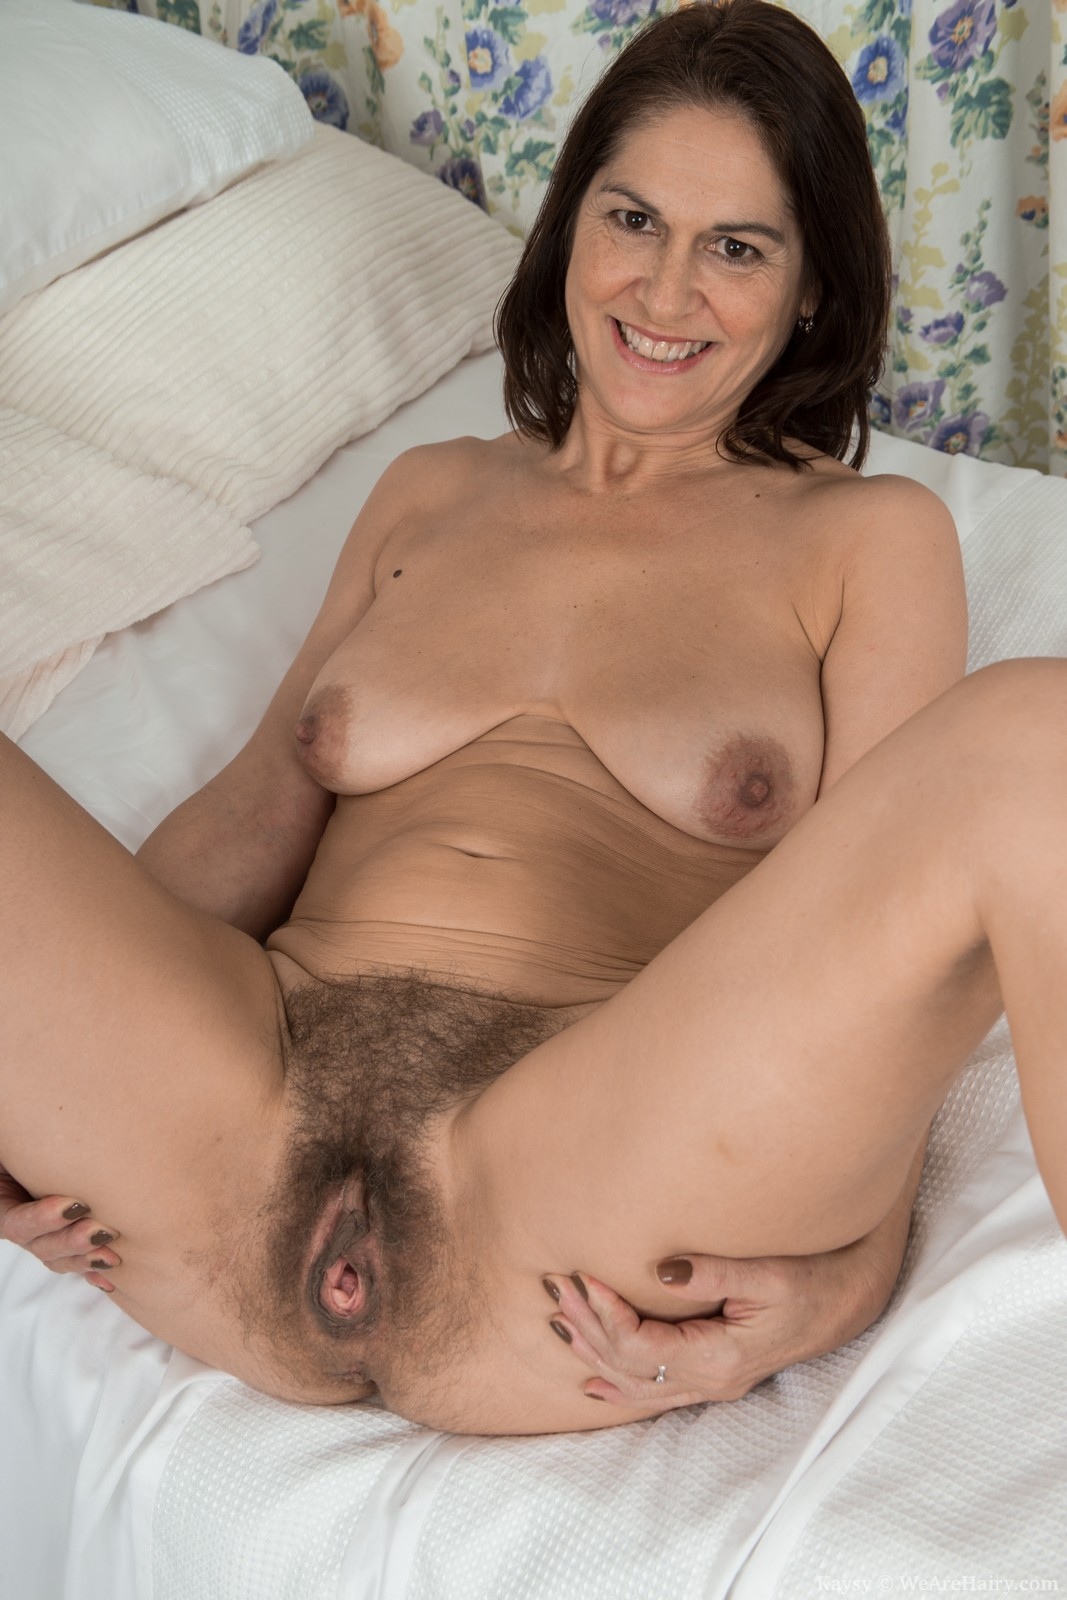 hairy-pussy-in-hot-panties-movies-men-fuck-pet